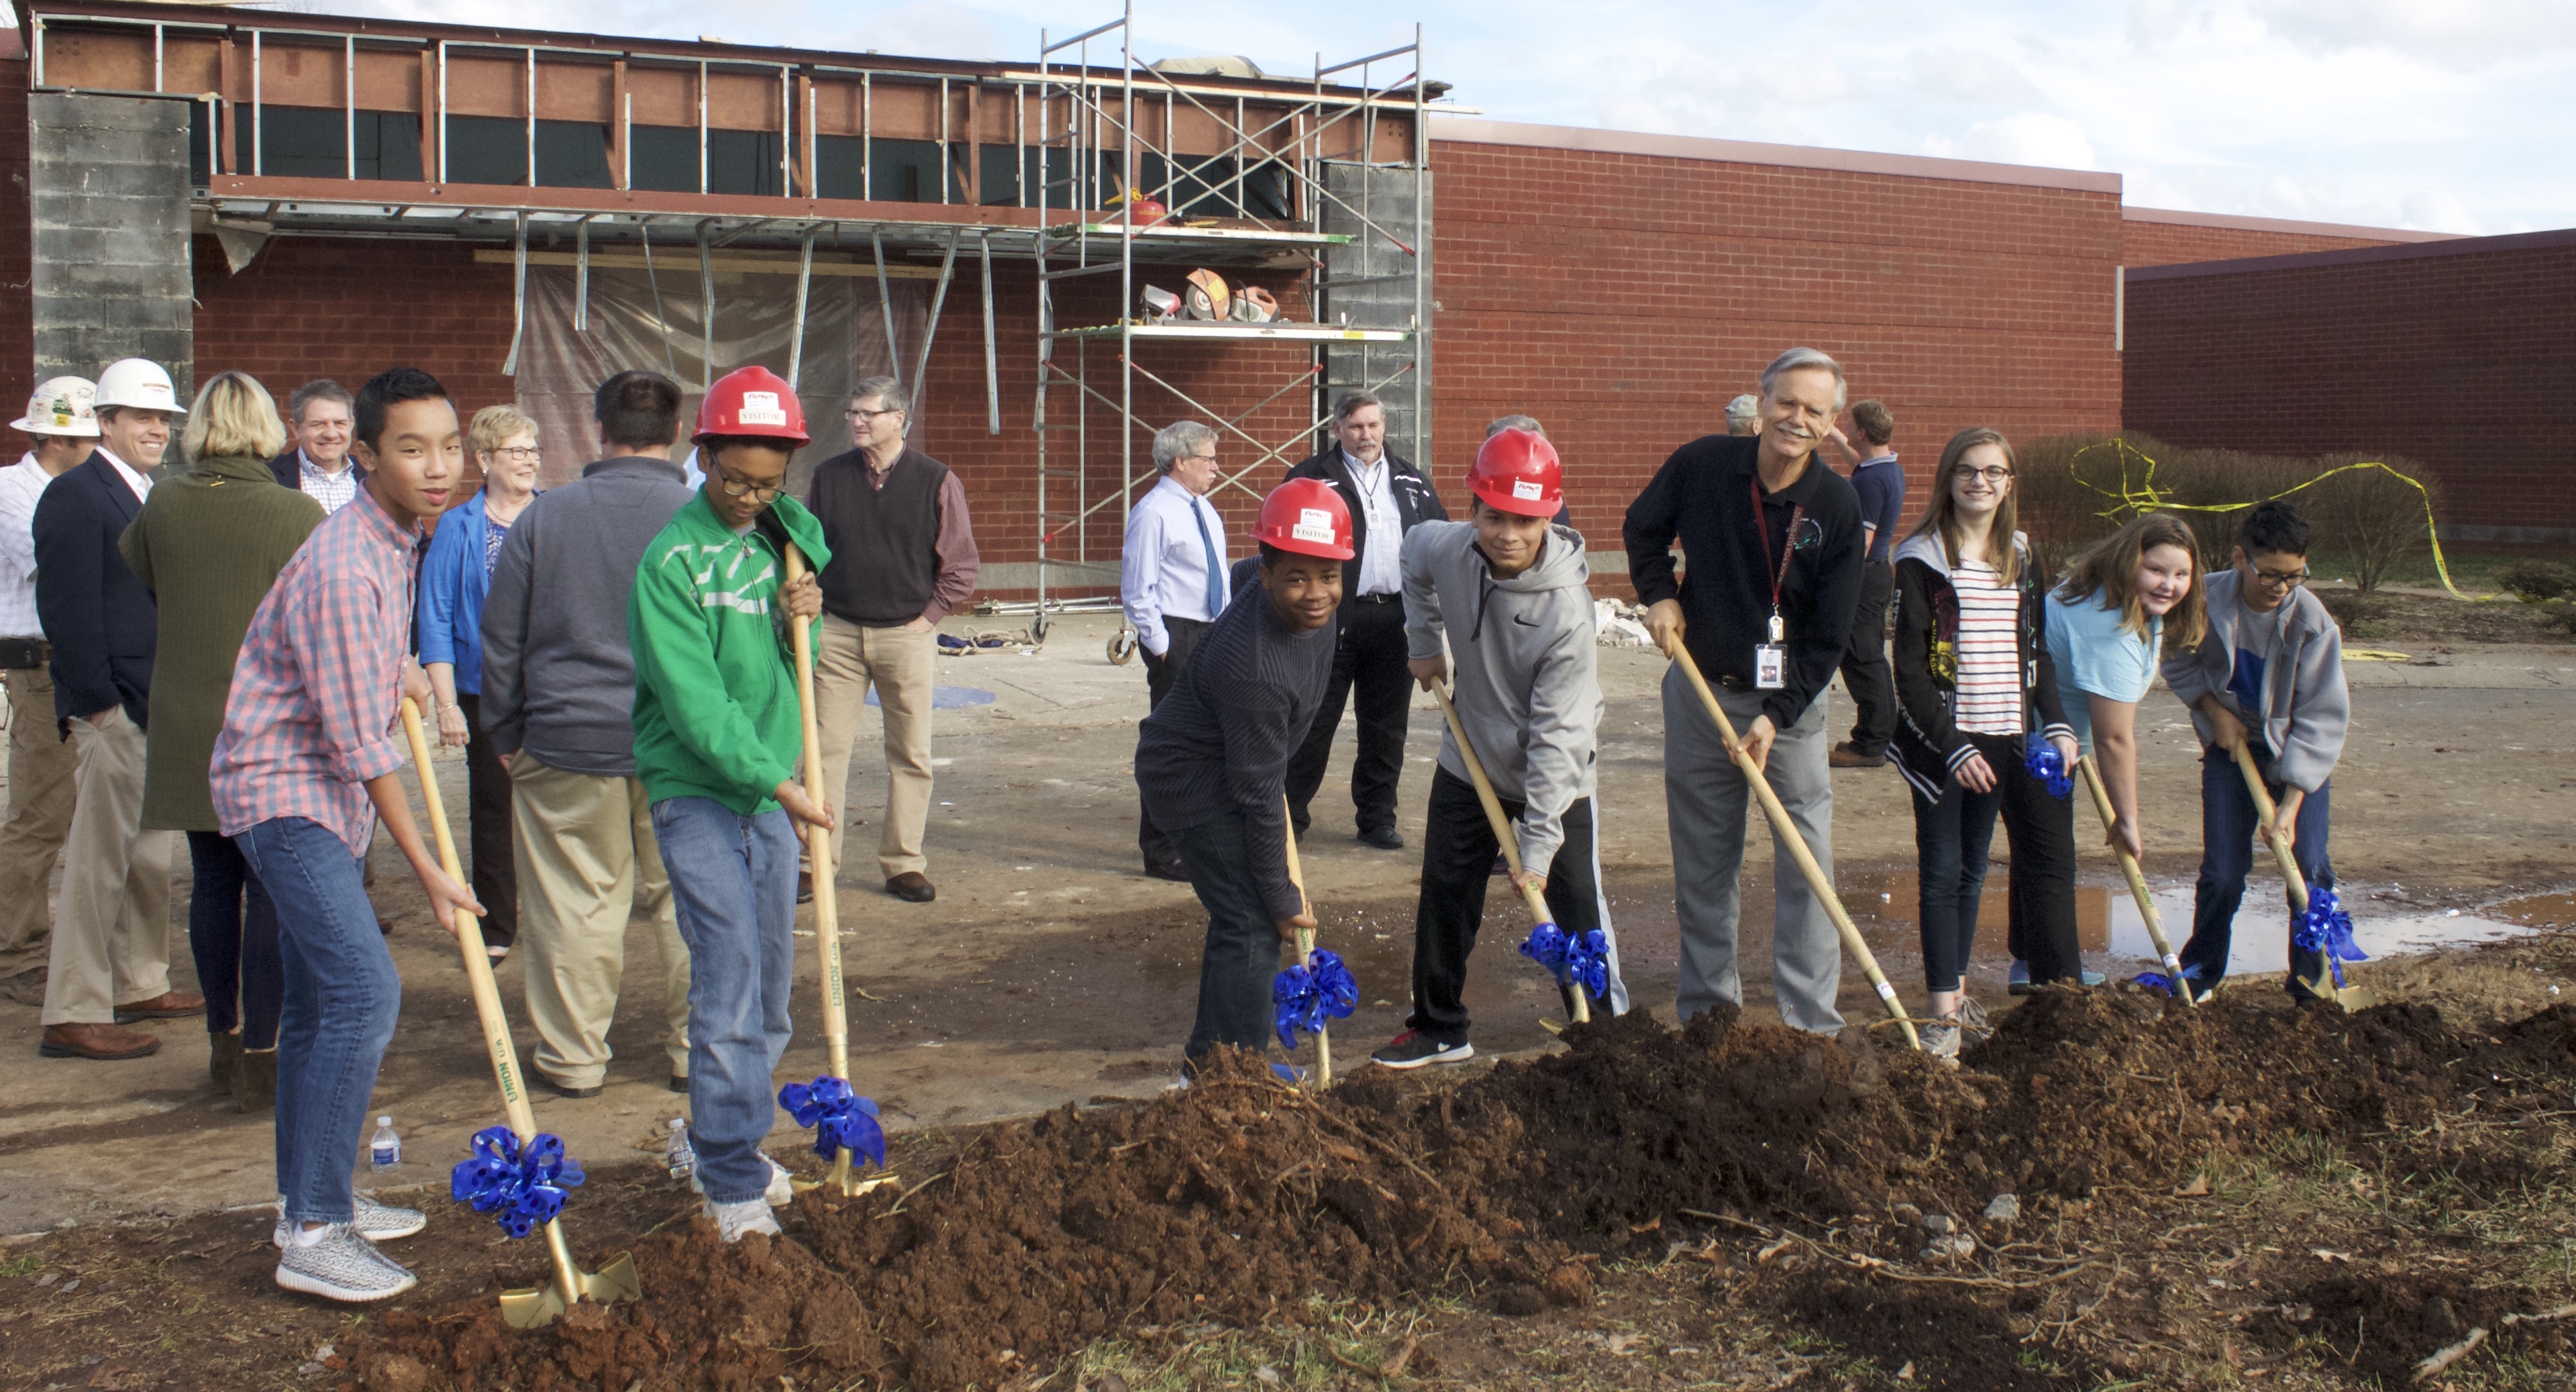 Black Fox Elementary School To Get 10 Classrooms, $2.2 Million Expansion